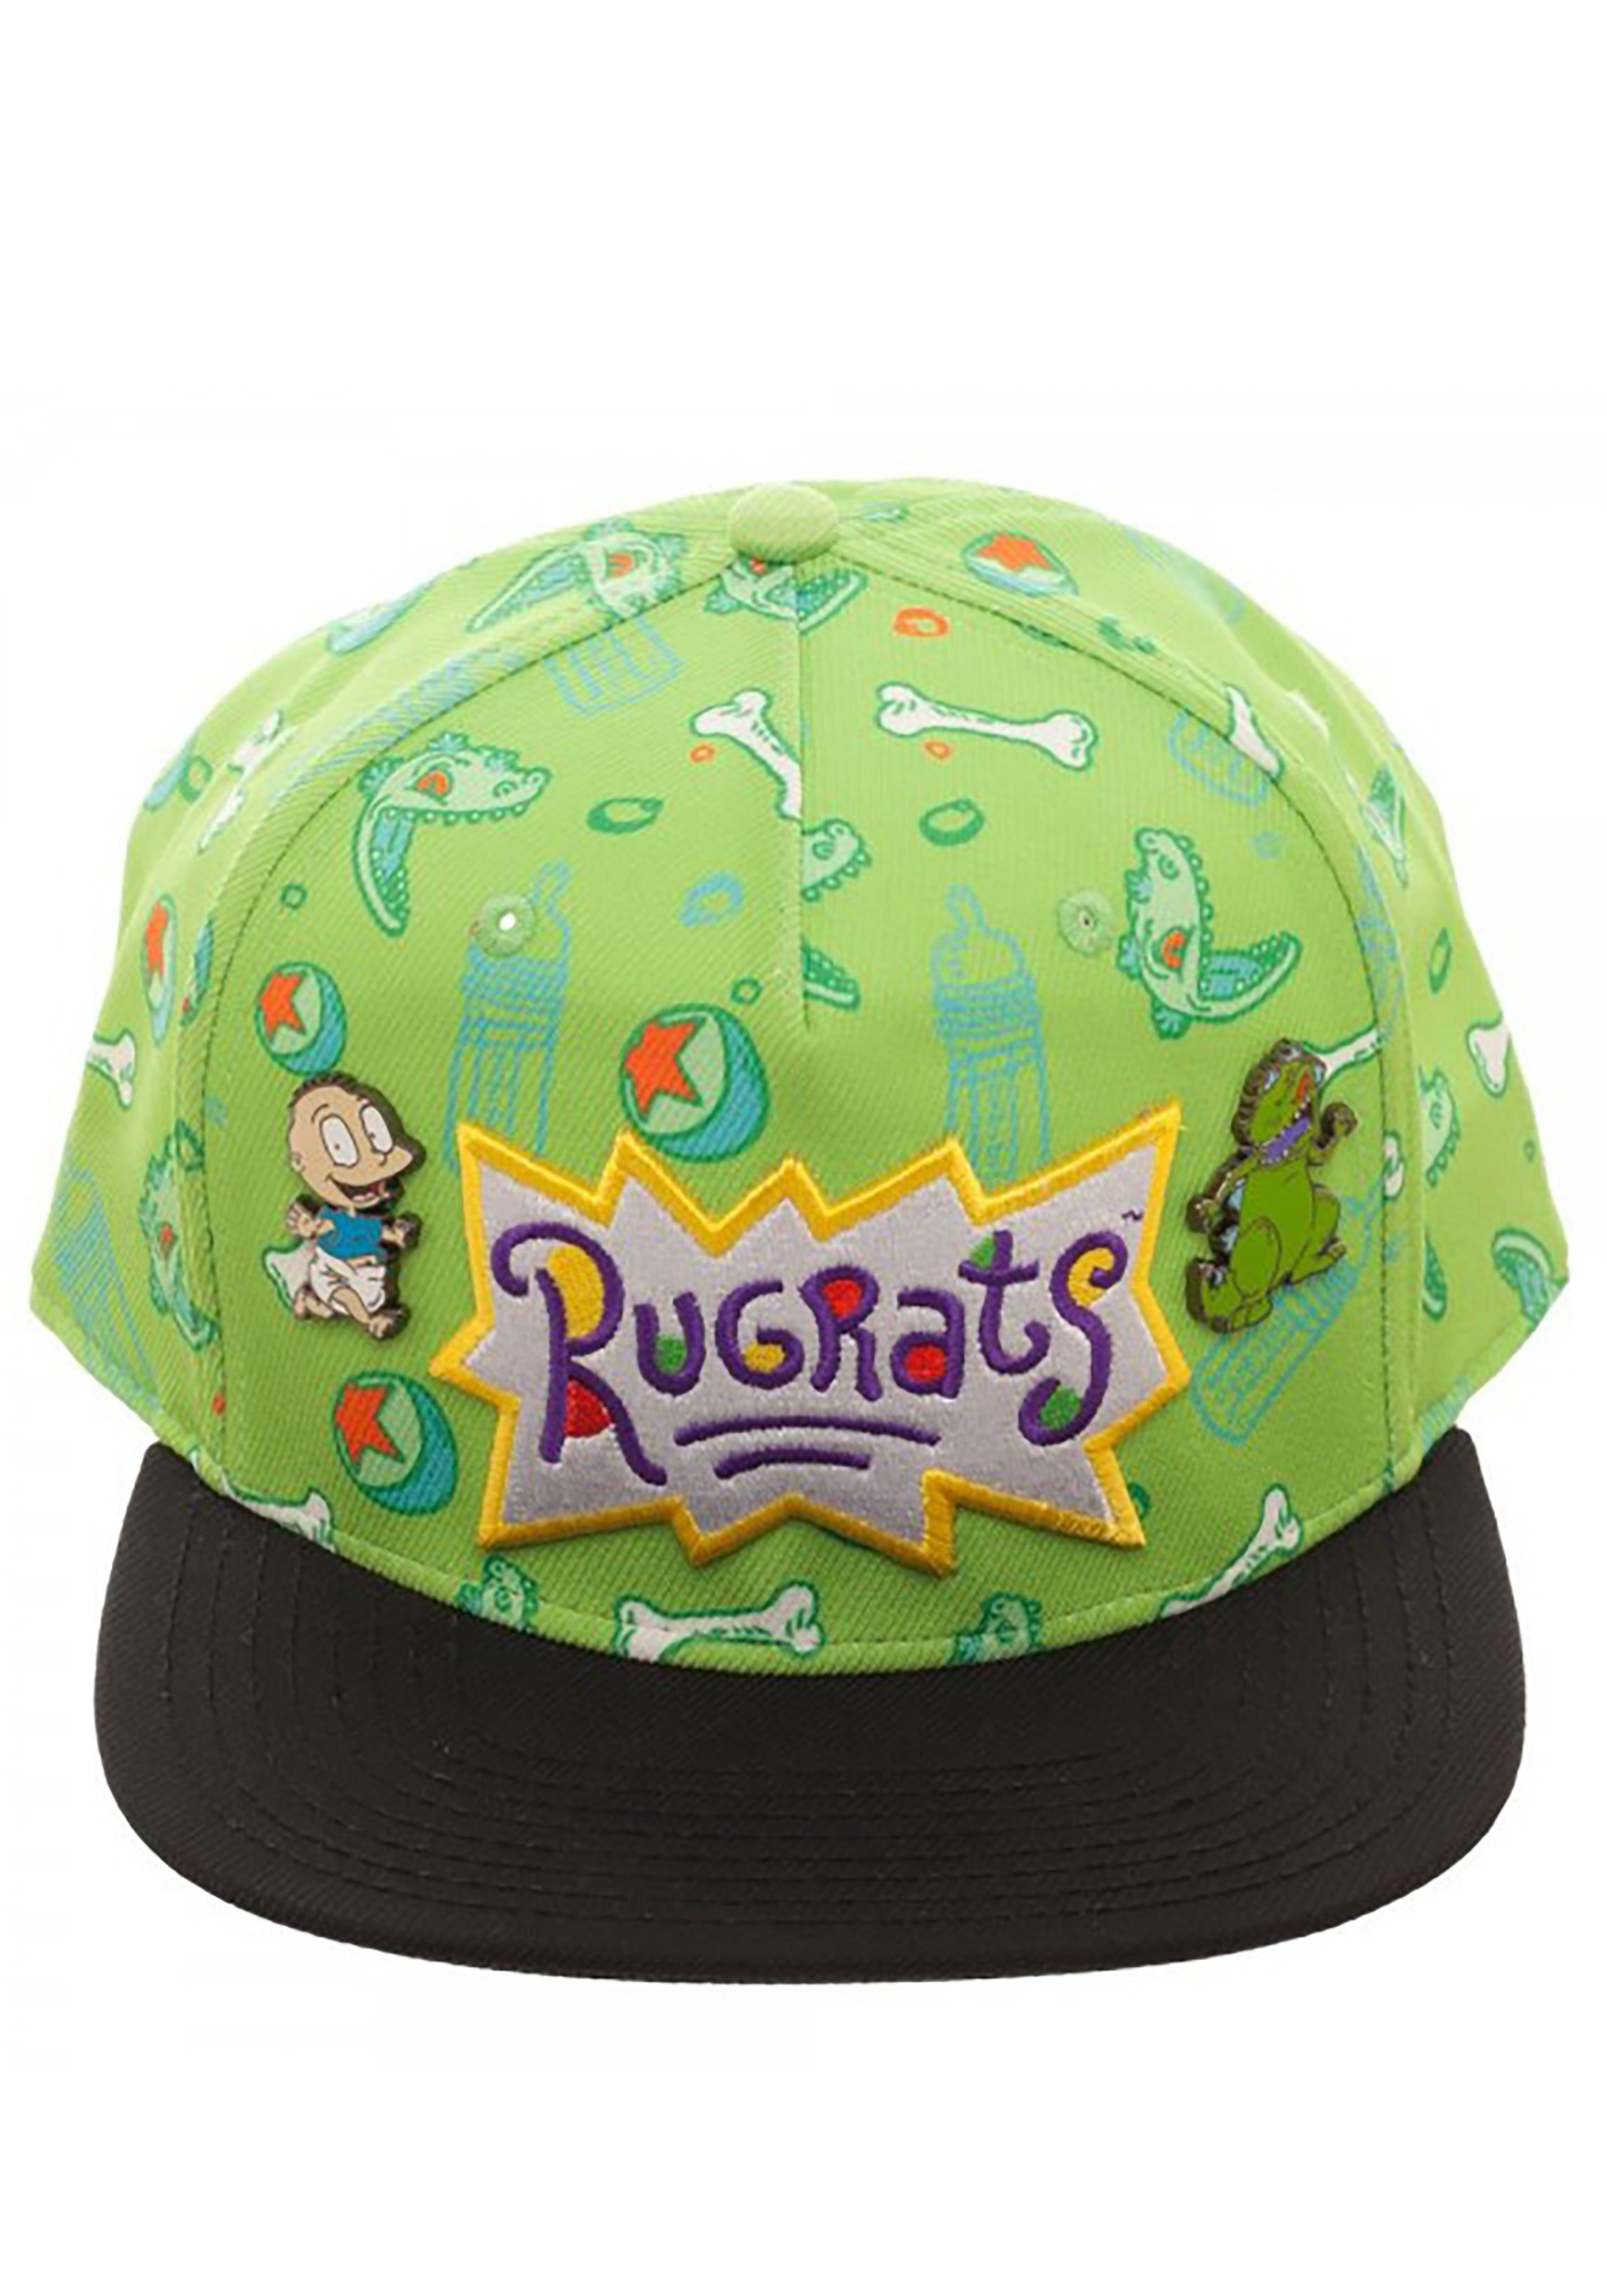 free shipping a101d 64a3e Nickelodeon Rugrats Sublimated Snapback Hat